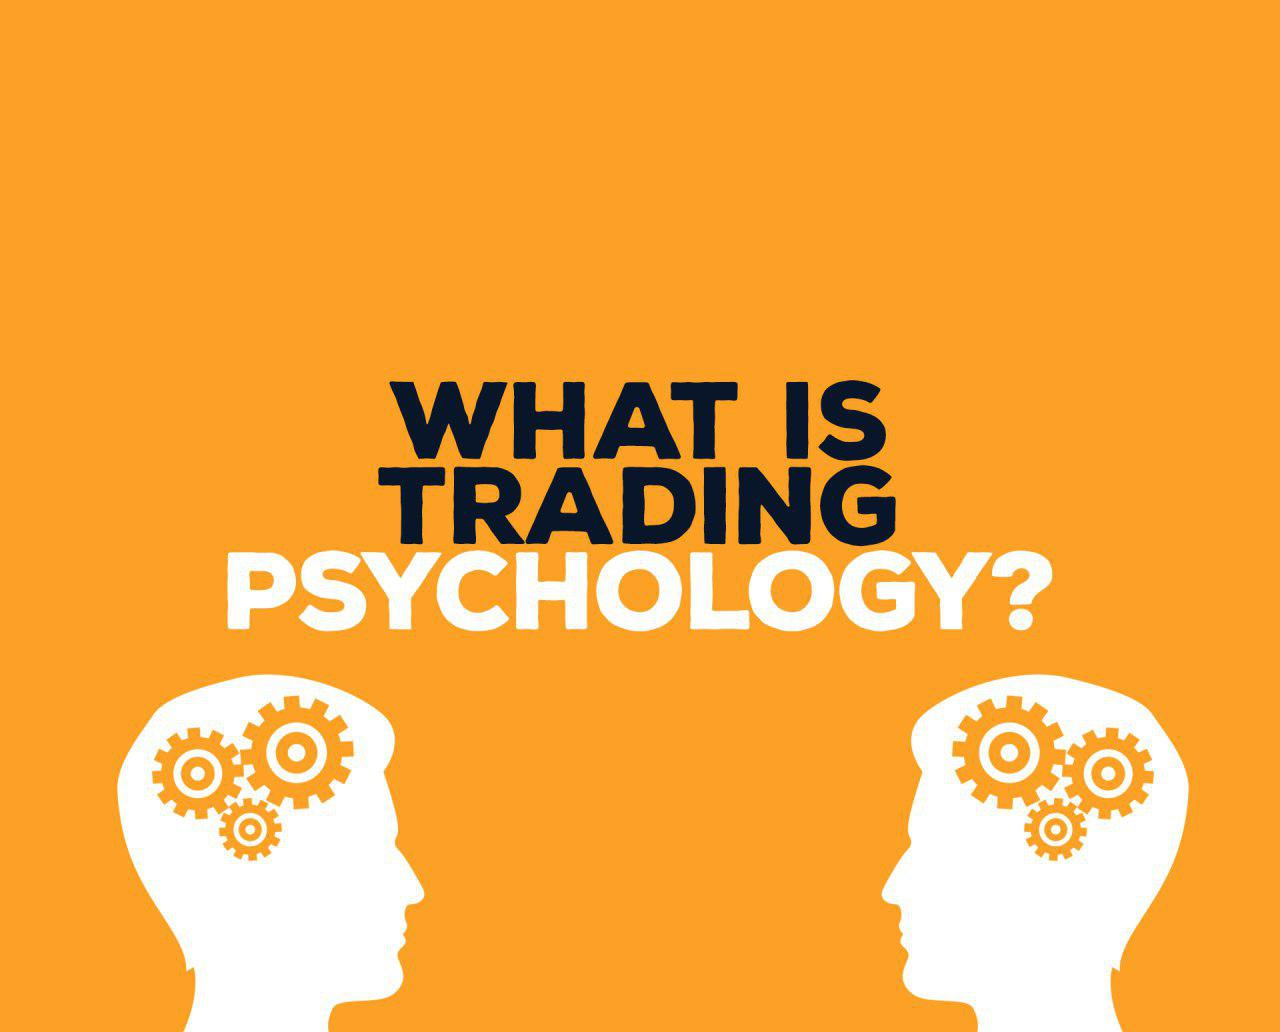 WHAT IS TRADING PYCHOLOGY